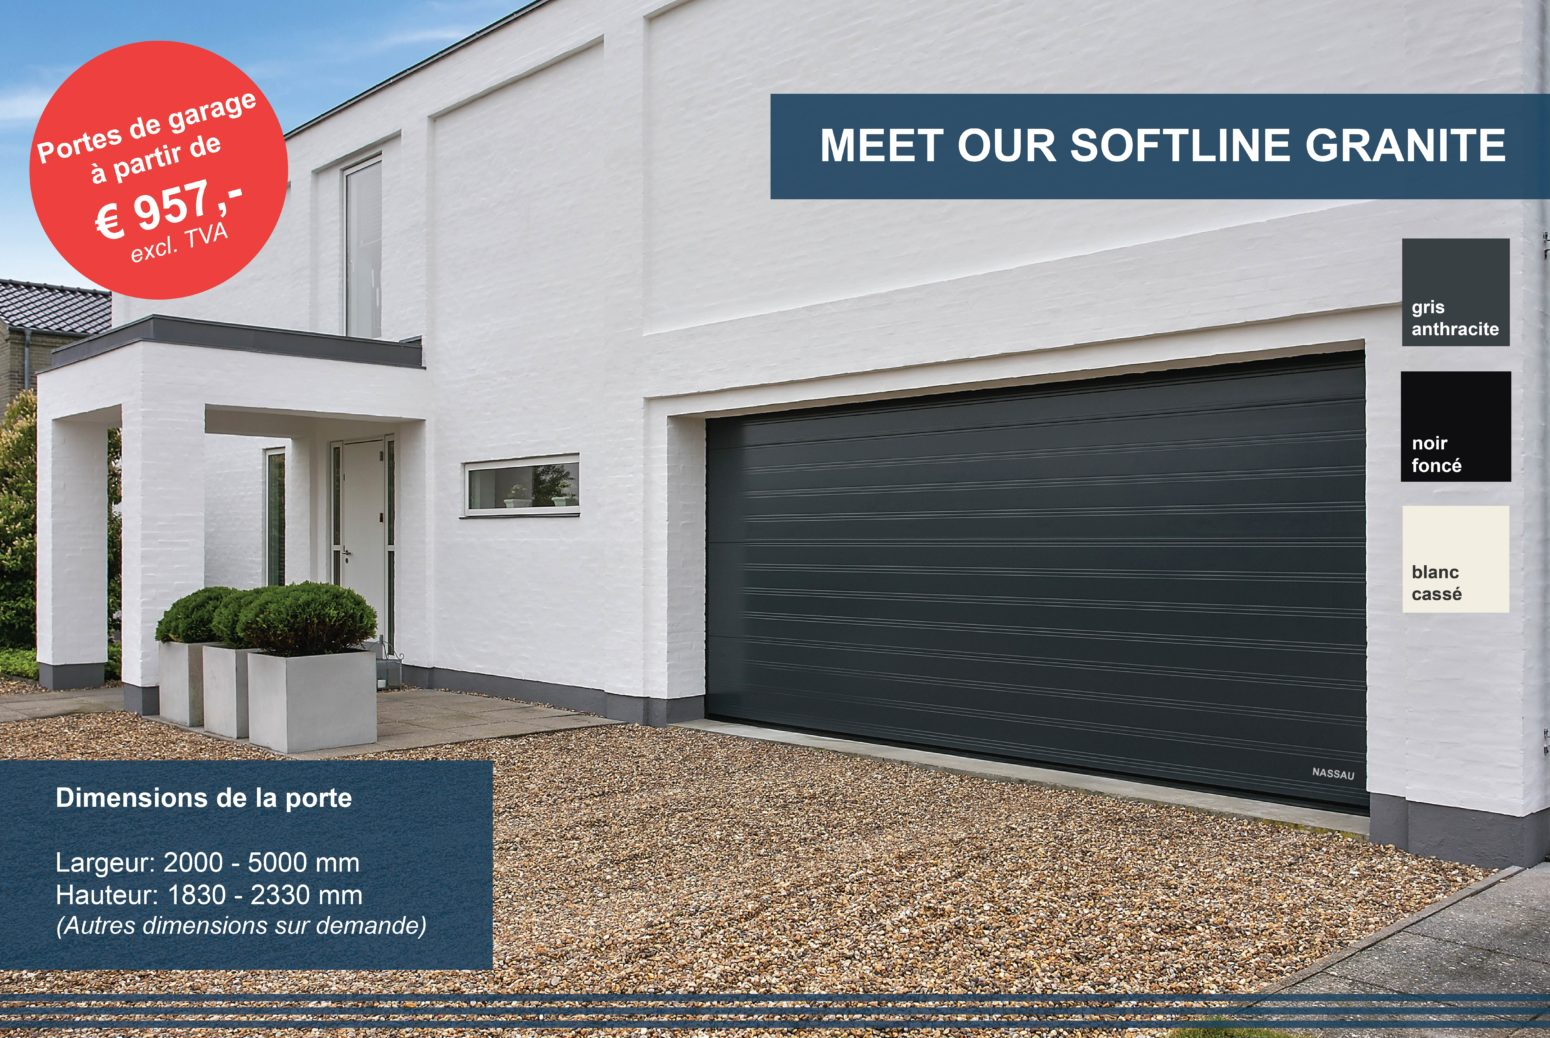 softline-granite-porte-de-garage